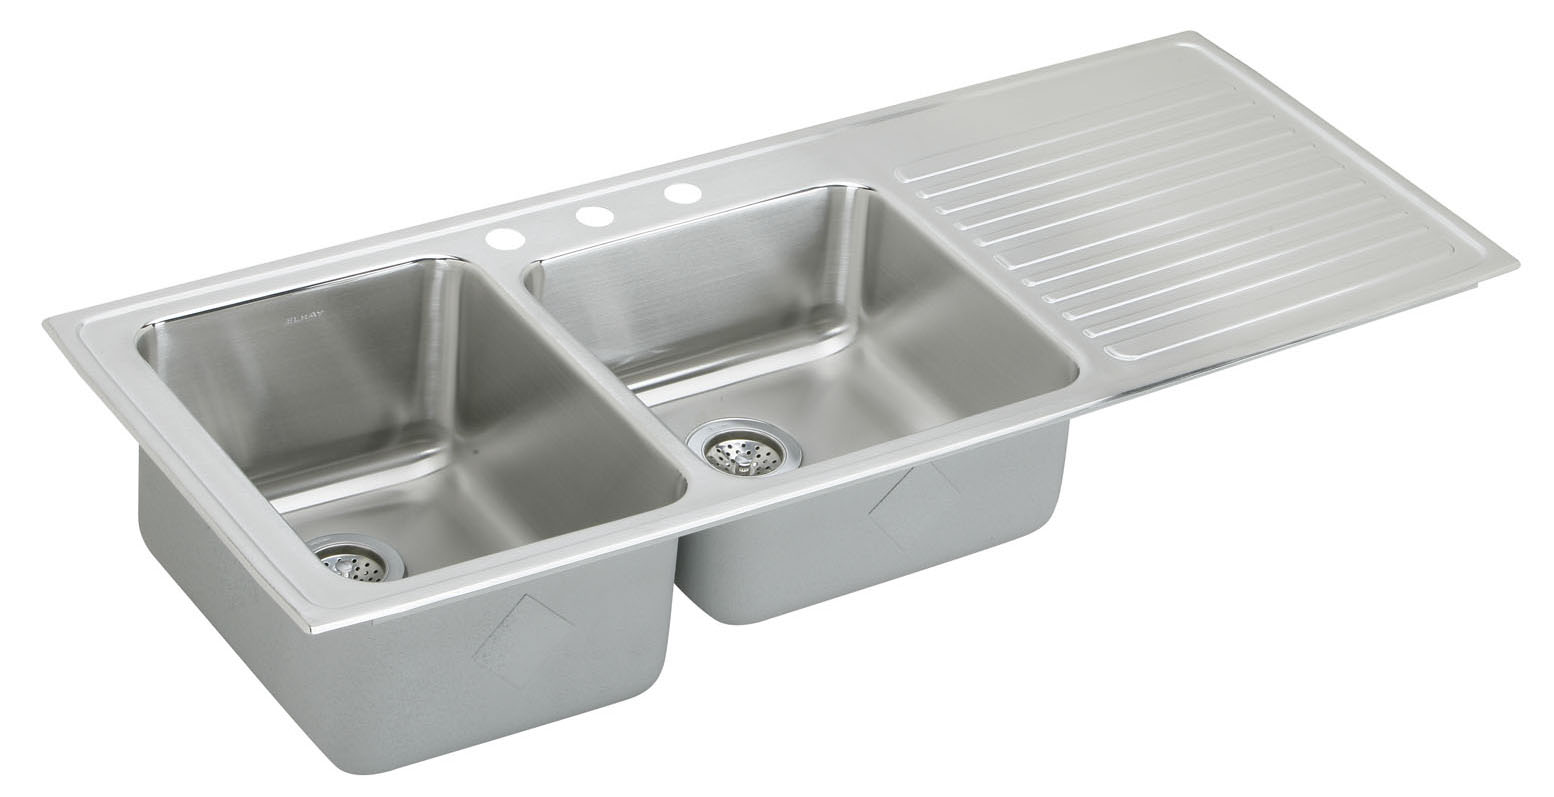 Captivating Elkay Gourmet Lustertone ILGR5422 Topmount Double Bowl Stainless Steel Sink